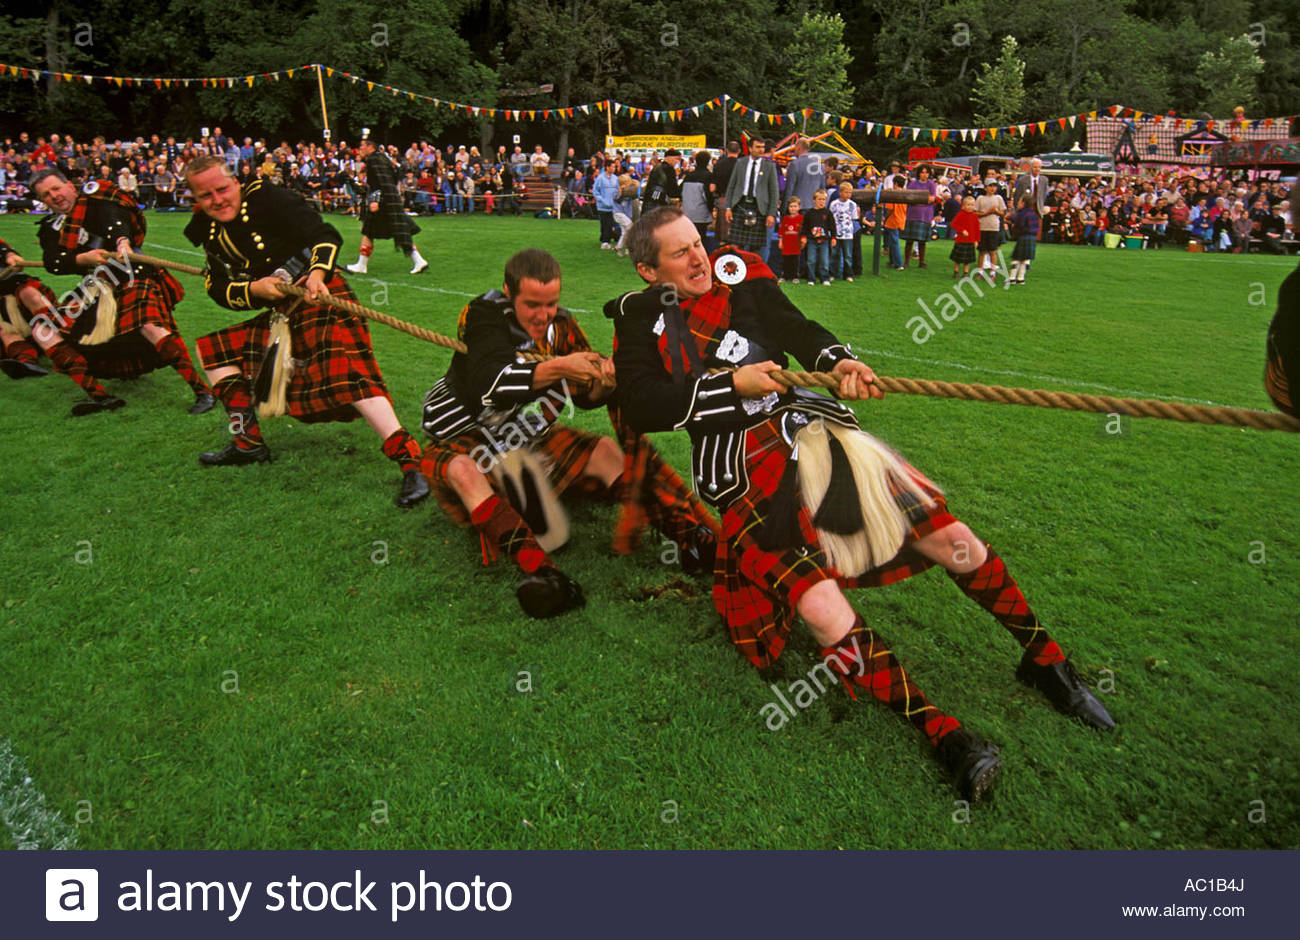 TUG OF WAR COMPETITION AT THE LONACH HIGHLAND GATHERING AND GAMES STRATHDON ABERDEENSHIRE - Stock Image